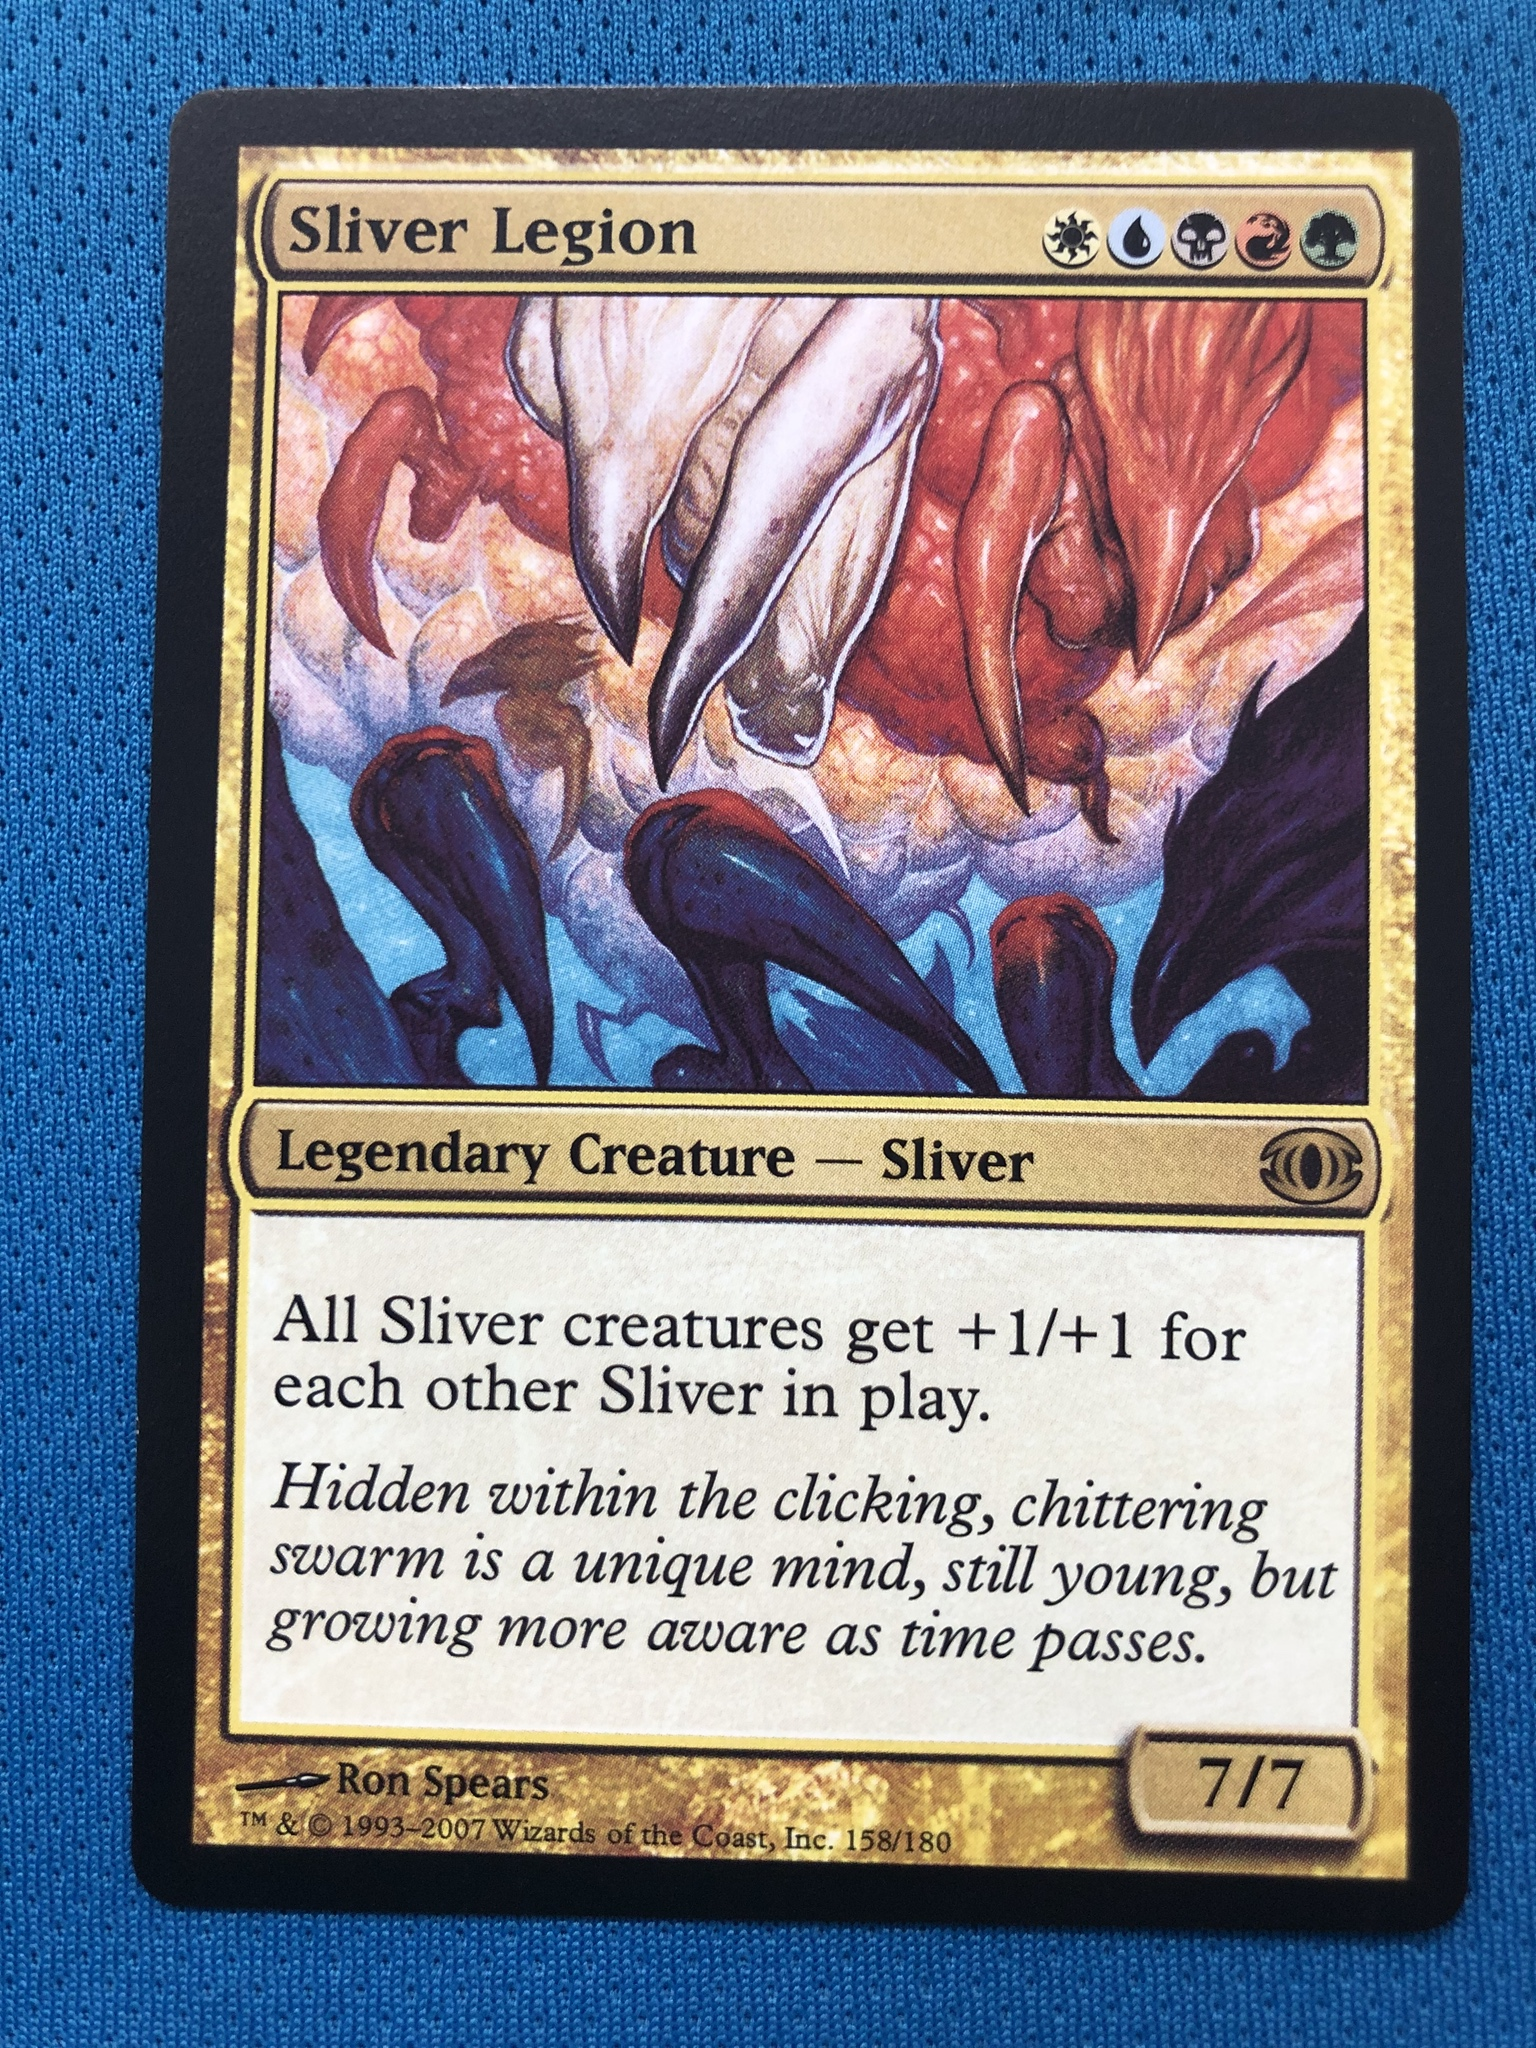 Sliver Legion Magician ProxyKing 8.0 VIP The Proxy Cards To Gathering Every Single Mg Card.